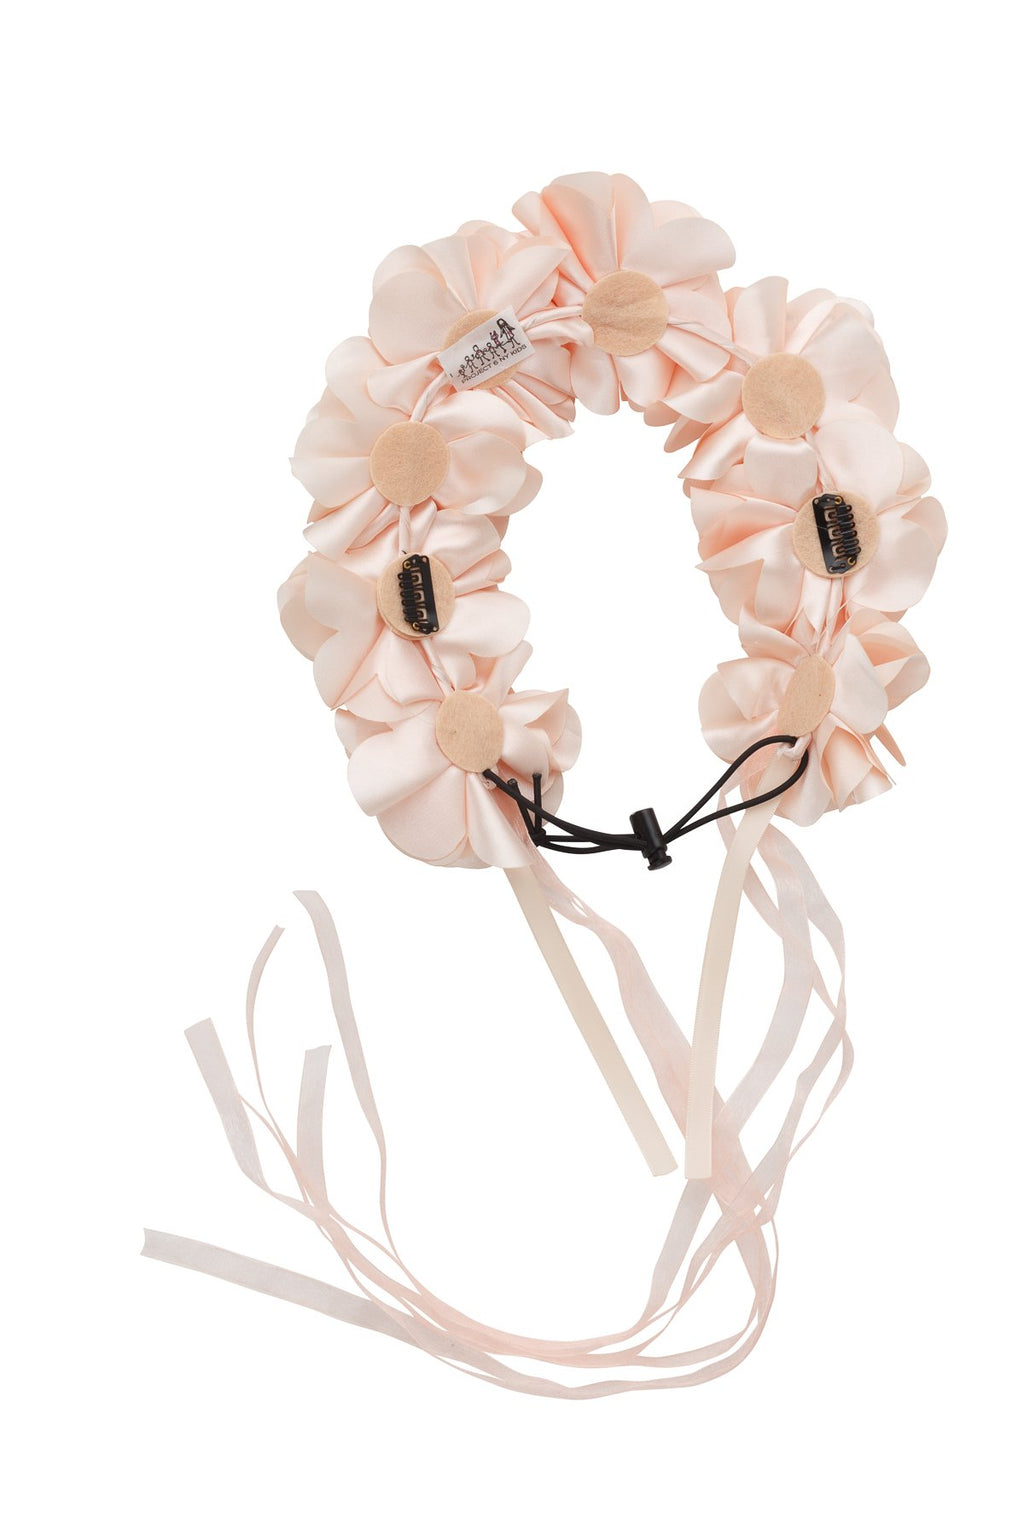 Floral Wreath Full - Light Peach - PROJECT 6, modest fashion